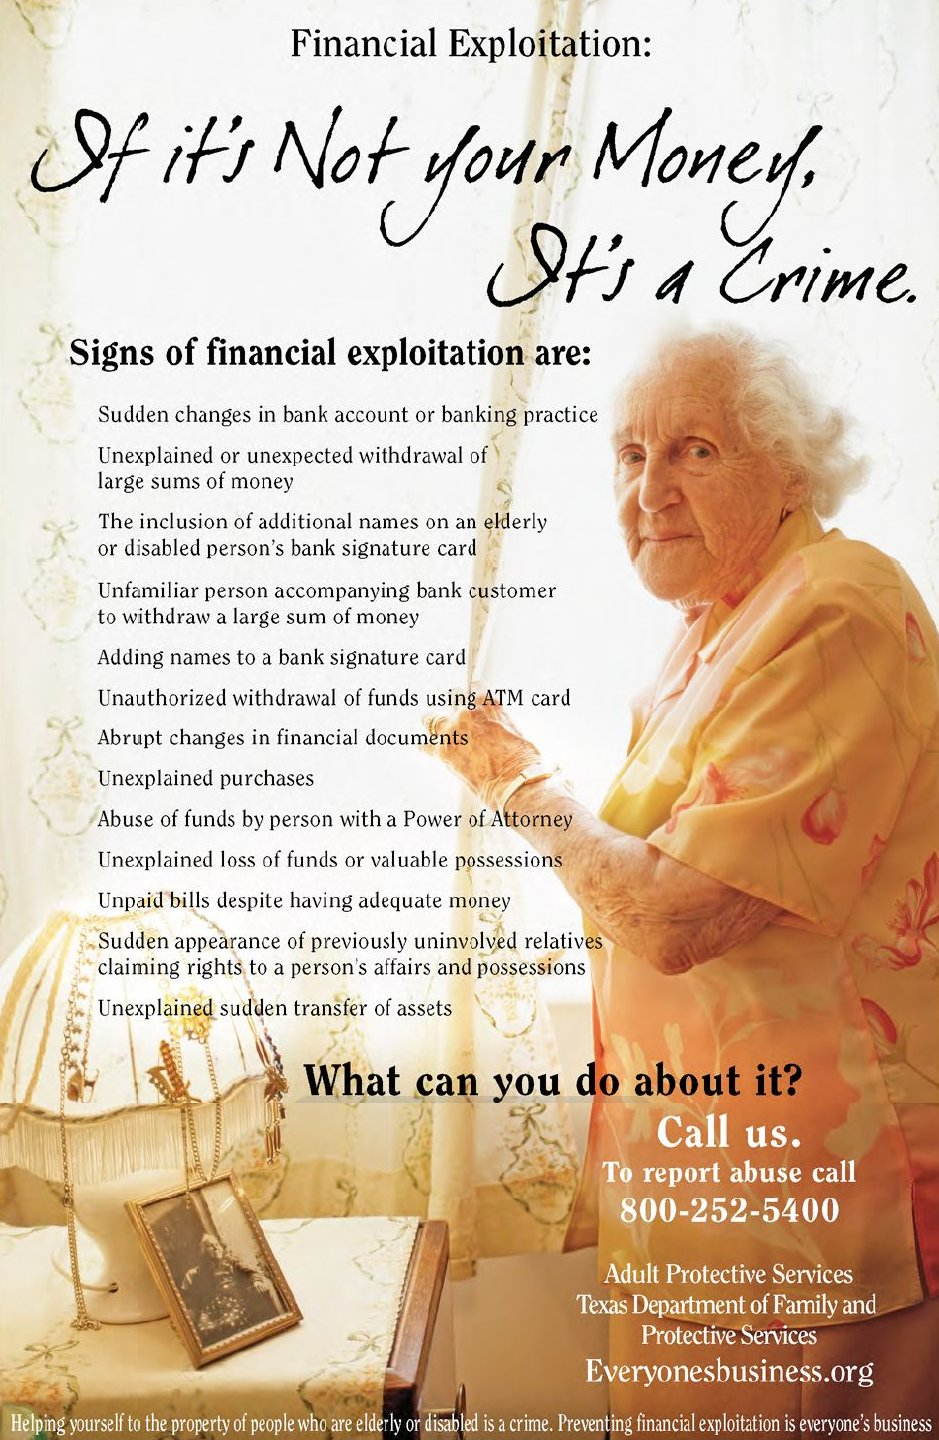 Financial exploitation - If it's not your money, it's a crime.